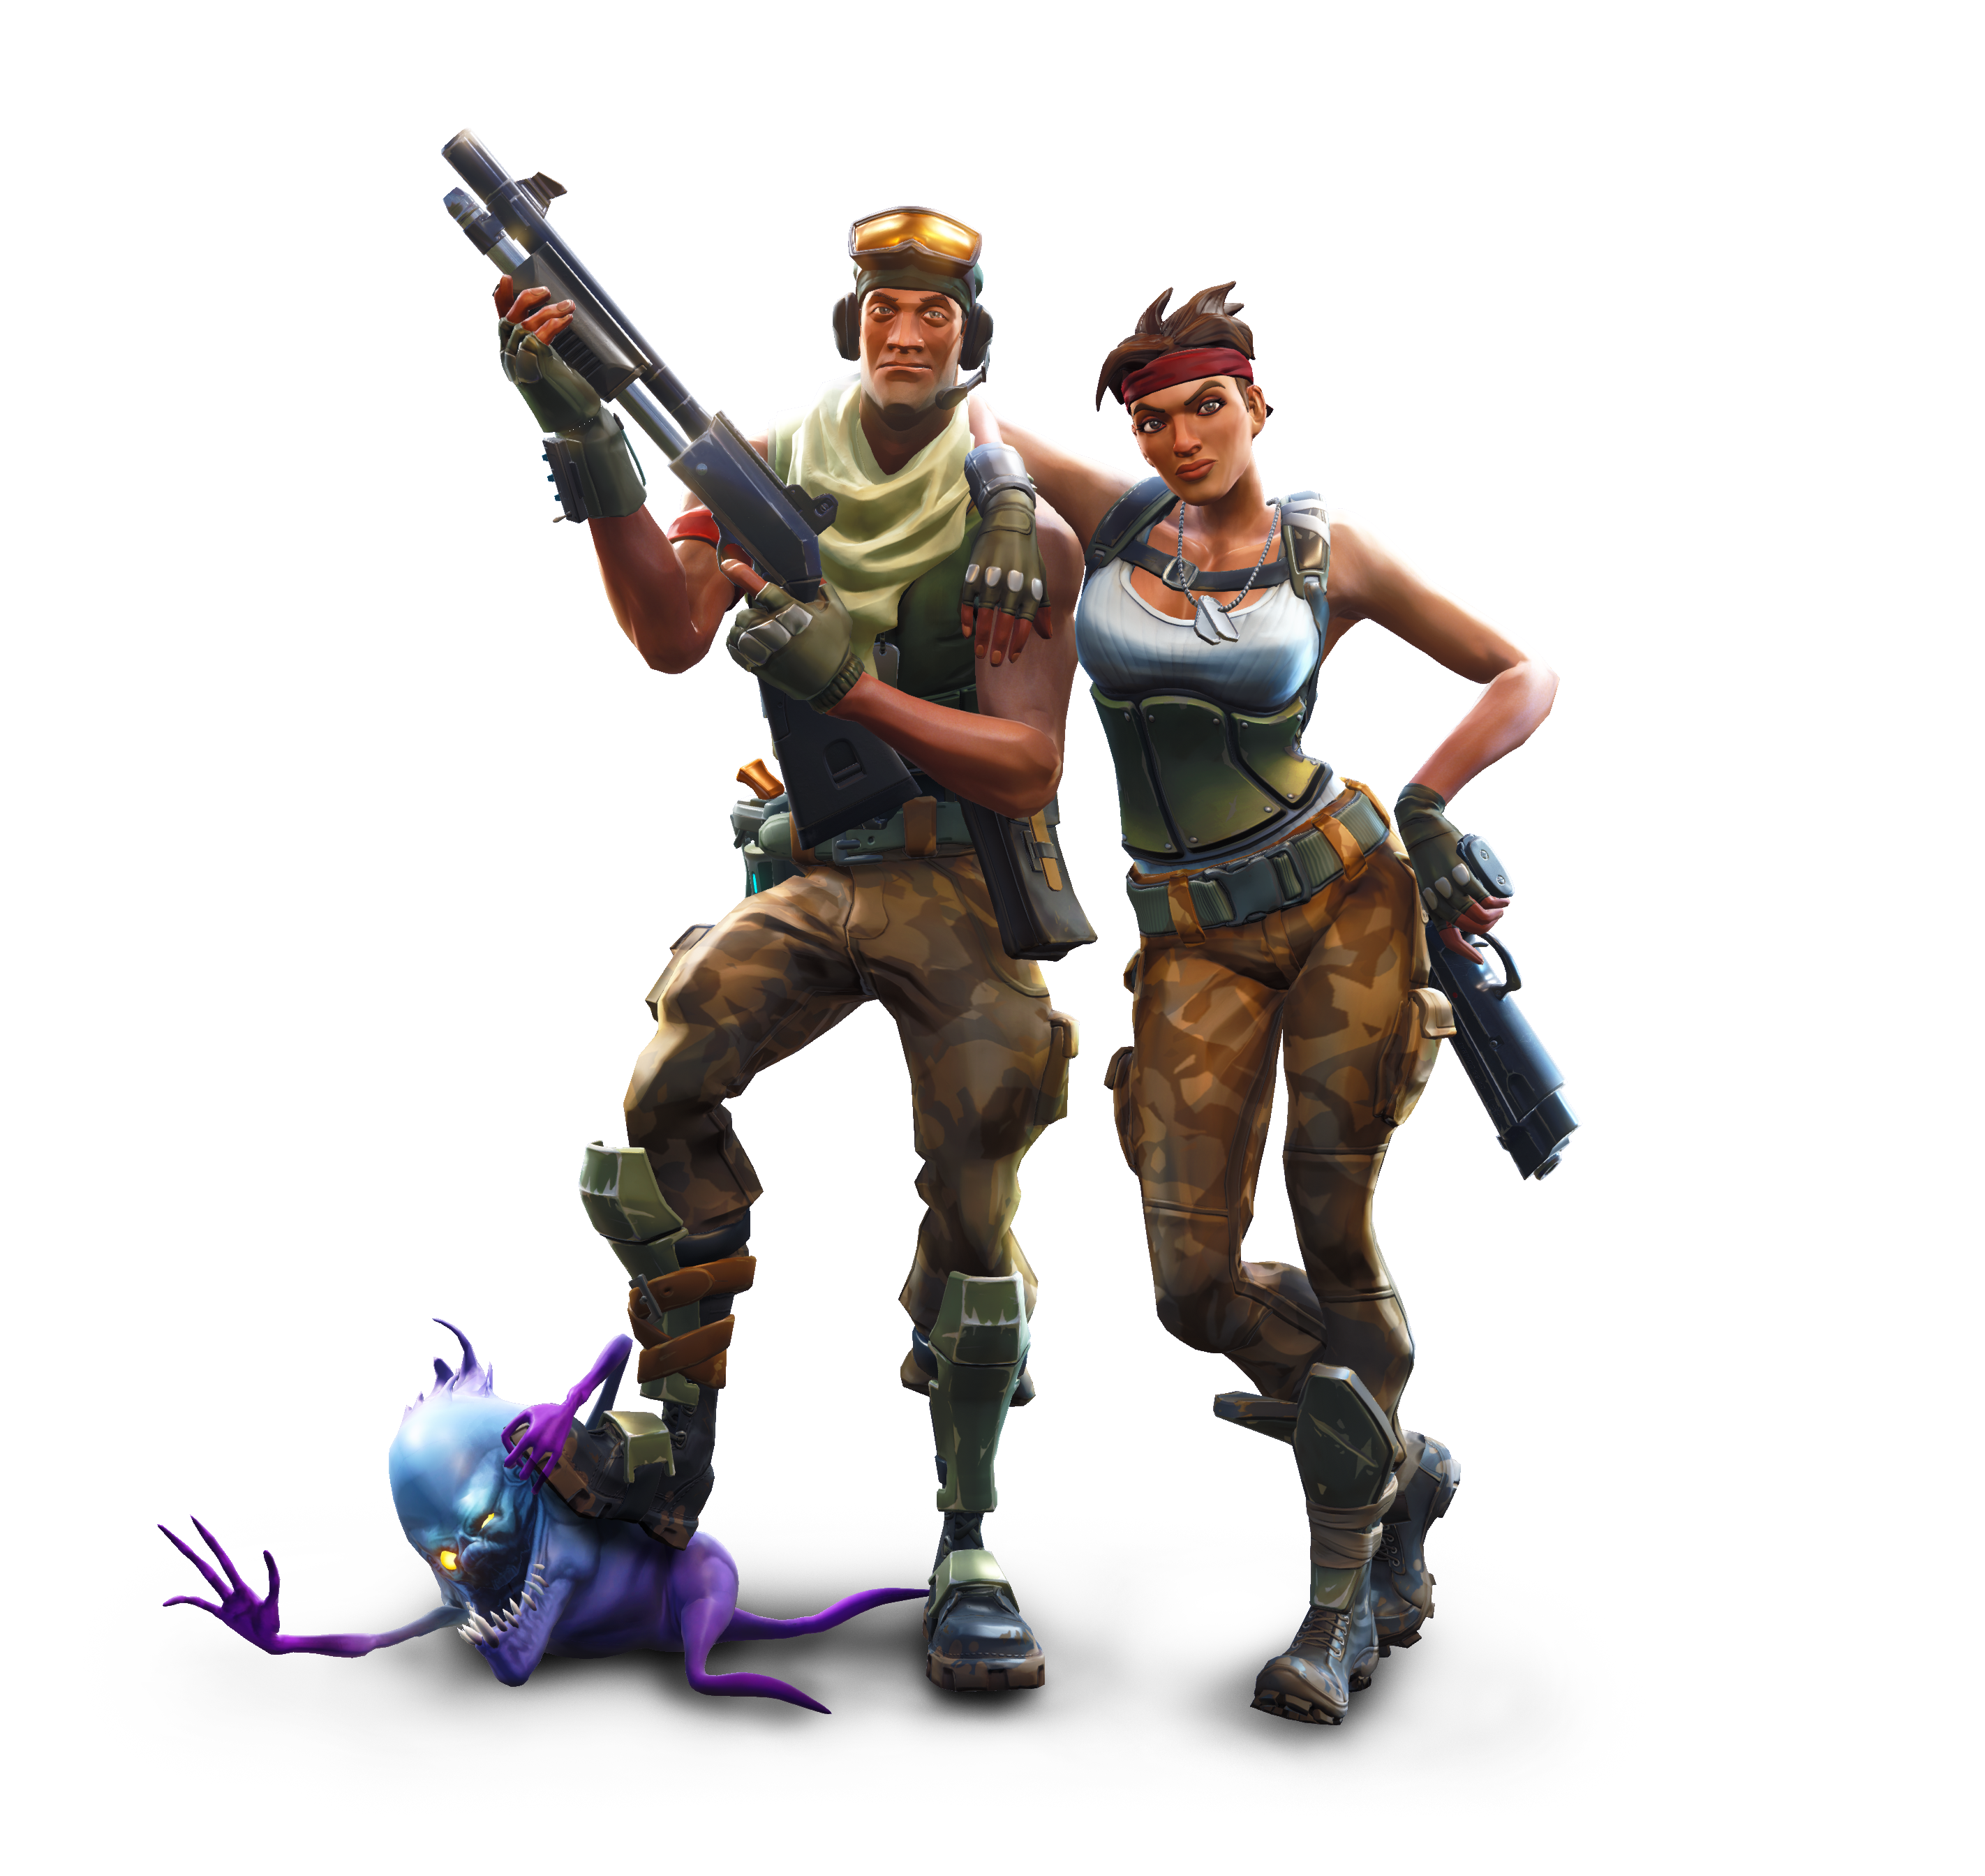 Fortnite png new. Battle royale champs image